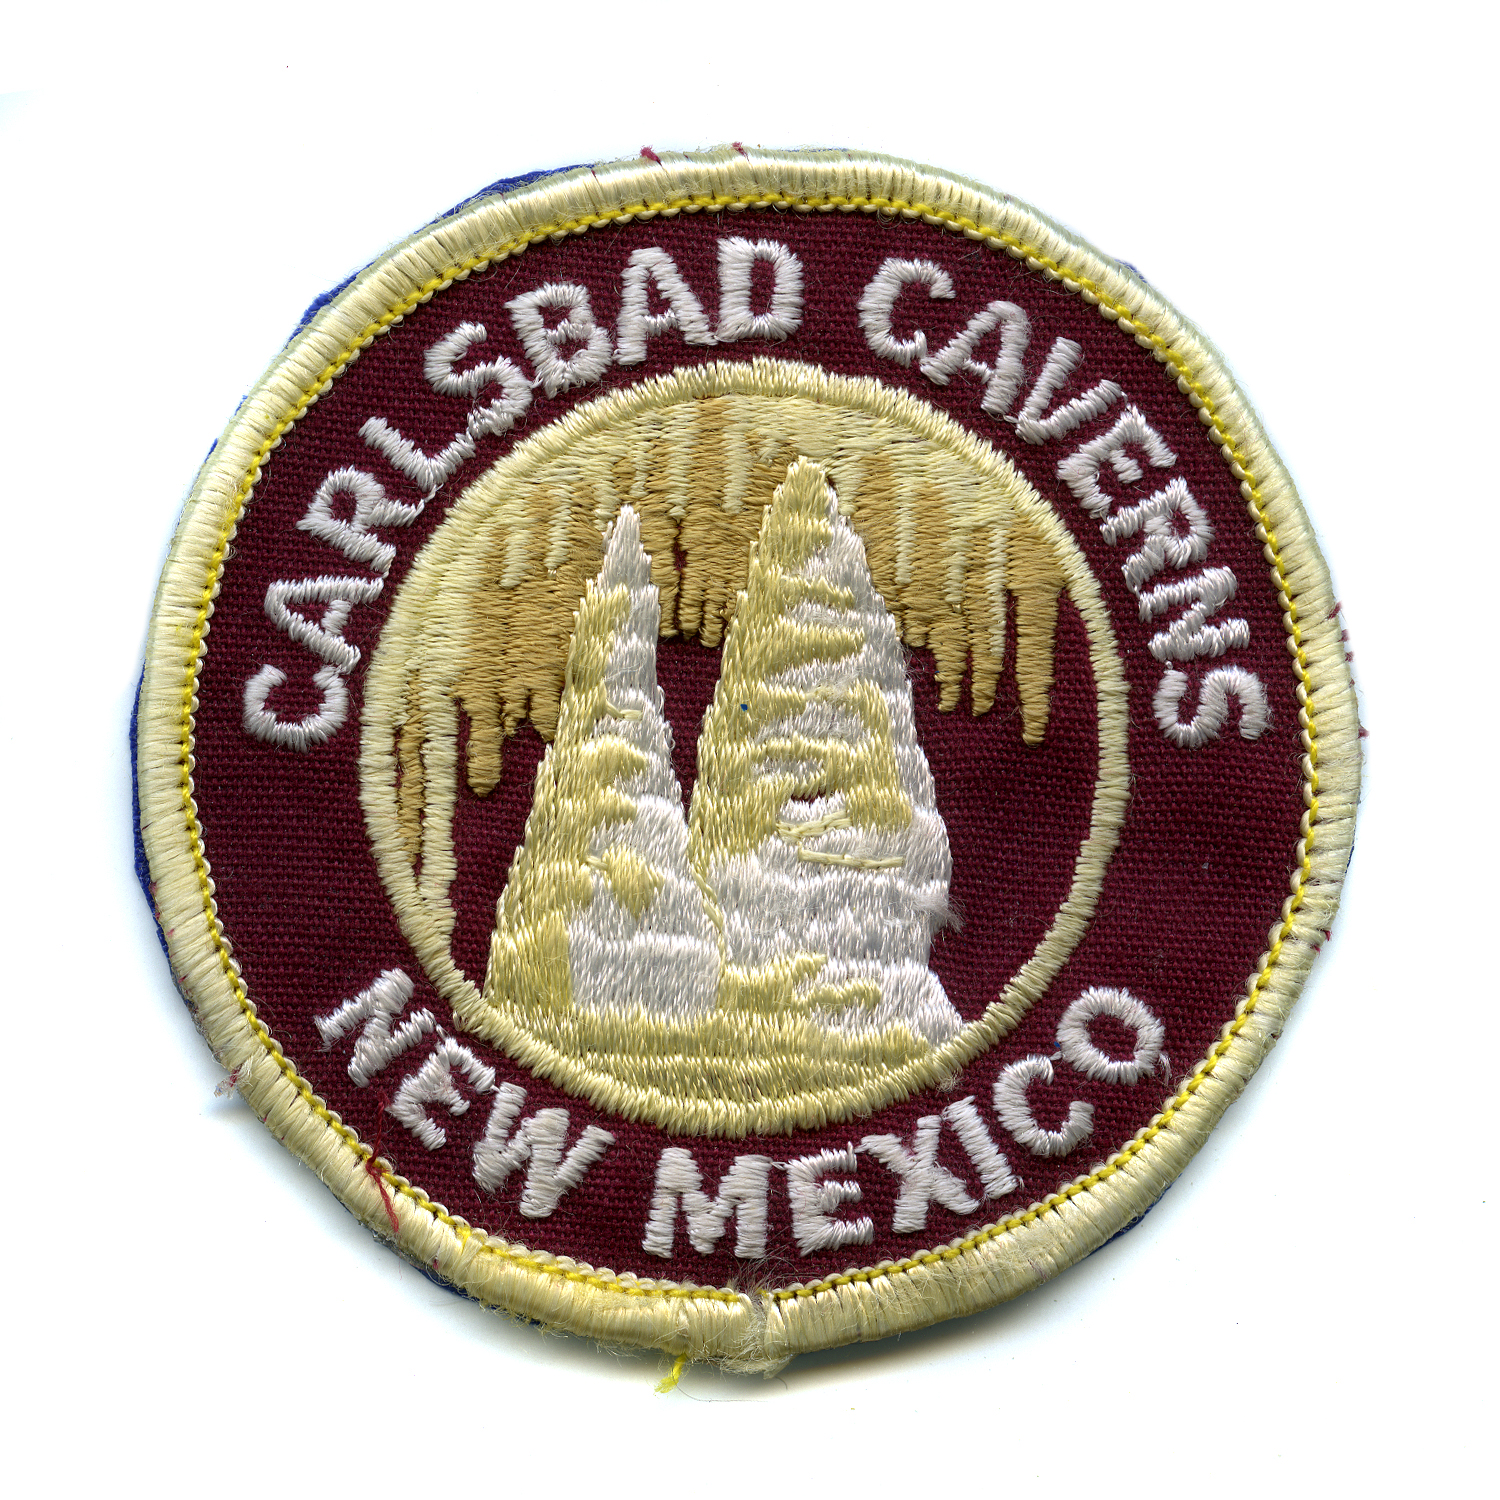 nps_patch_project_carlsbad_caverns_national_park_patch_1.jpg